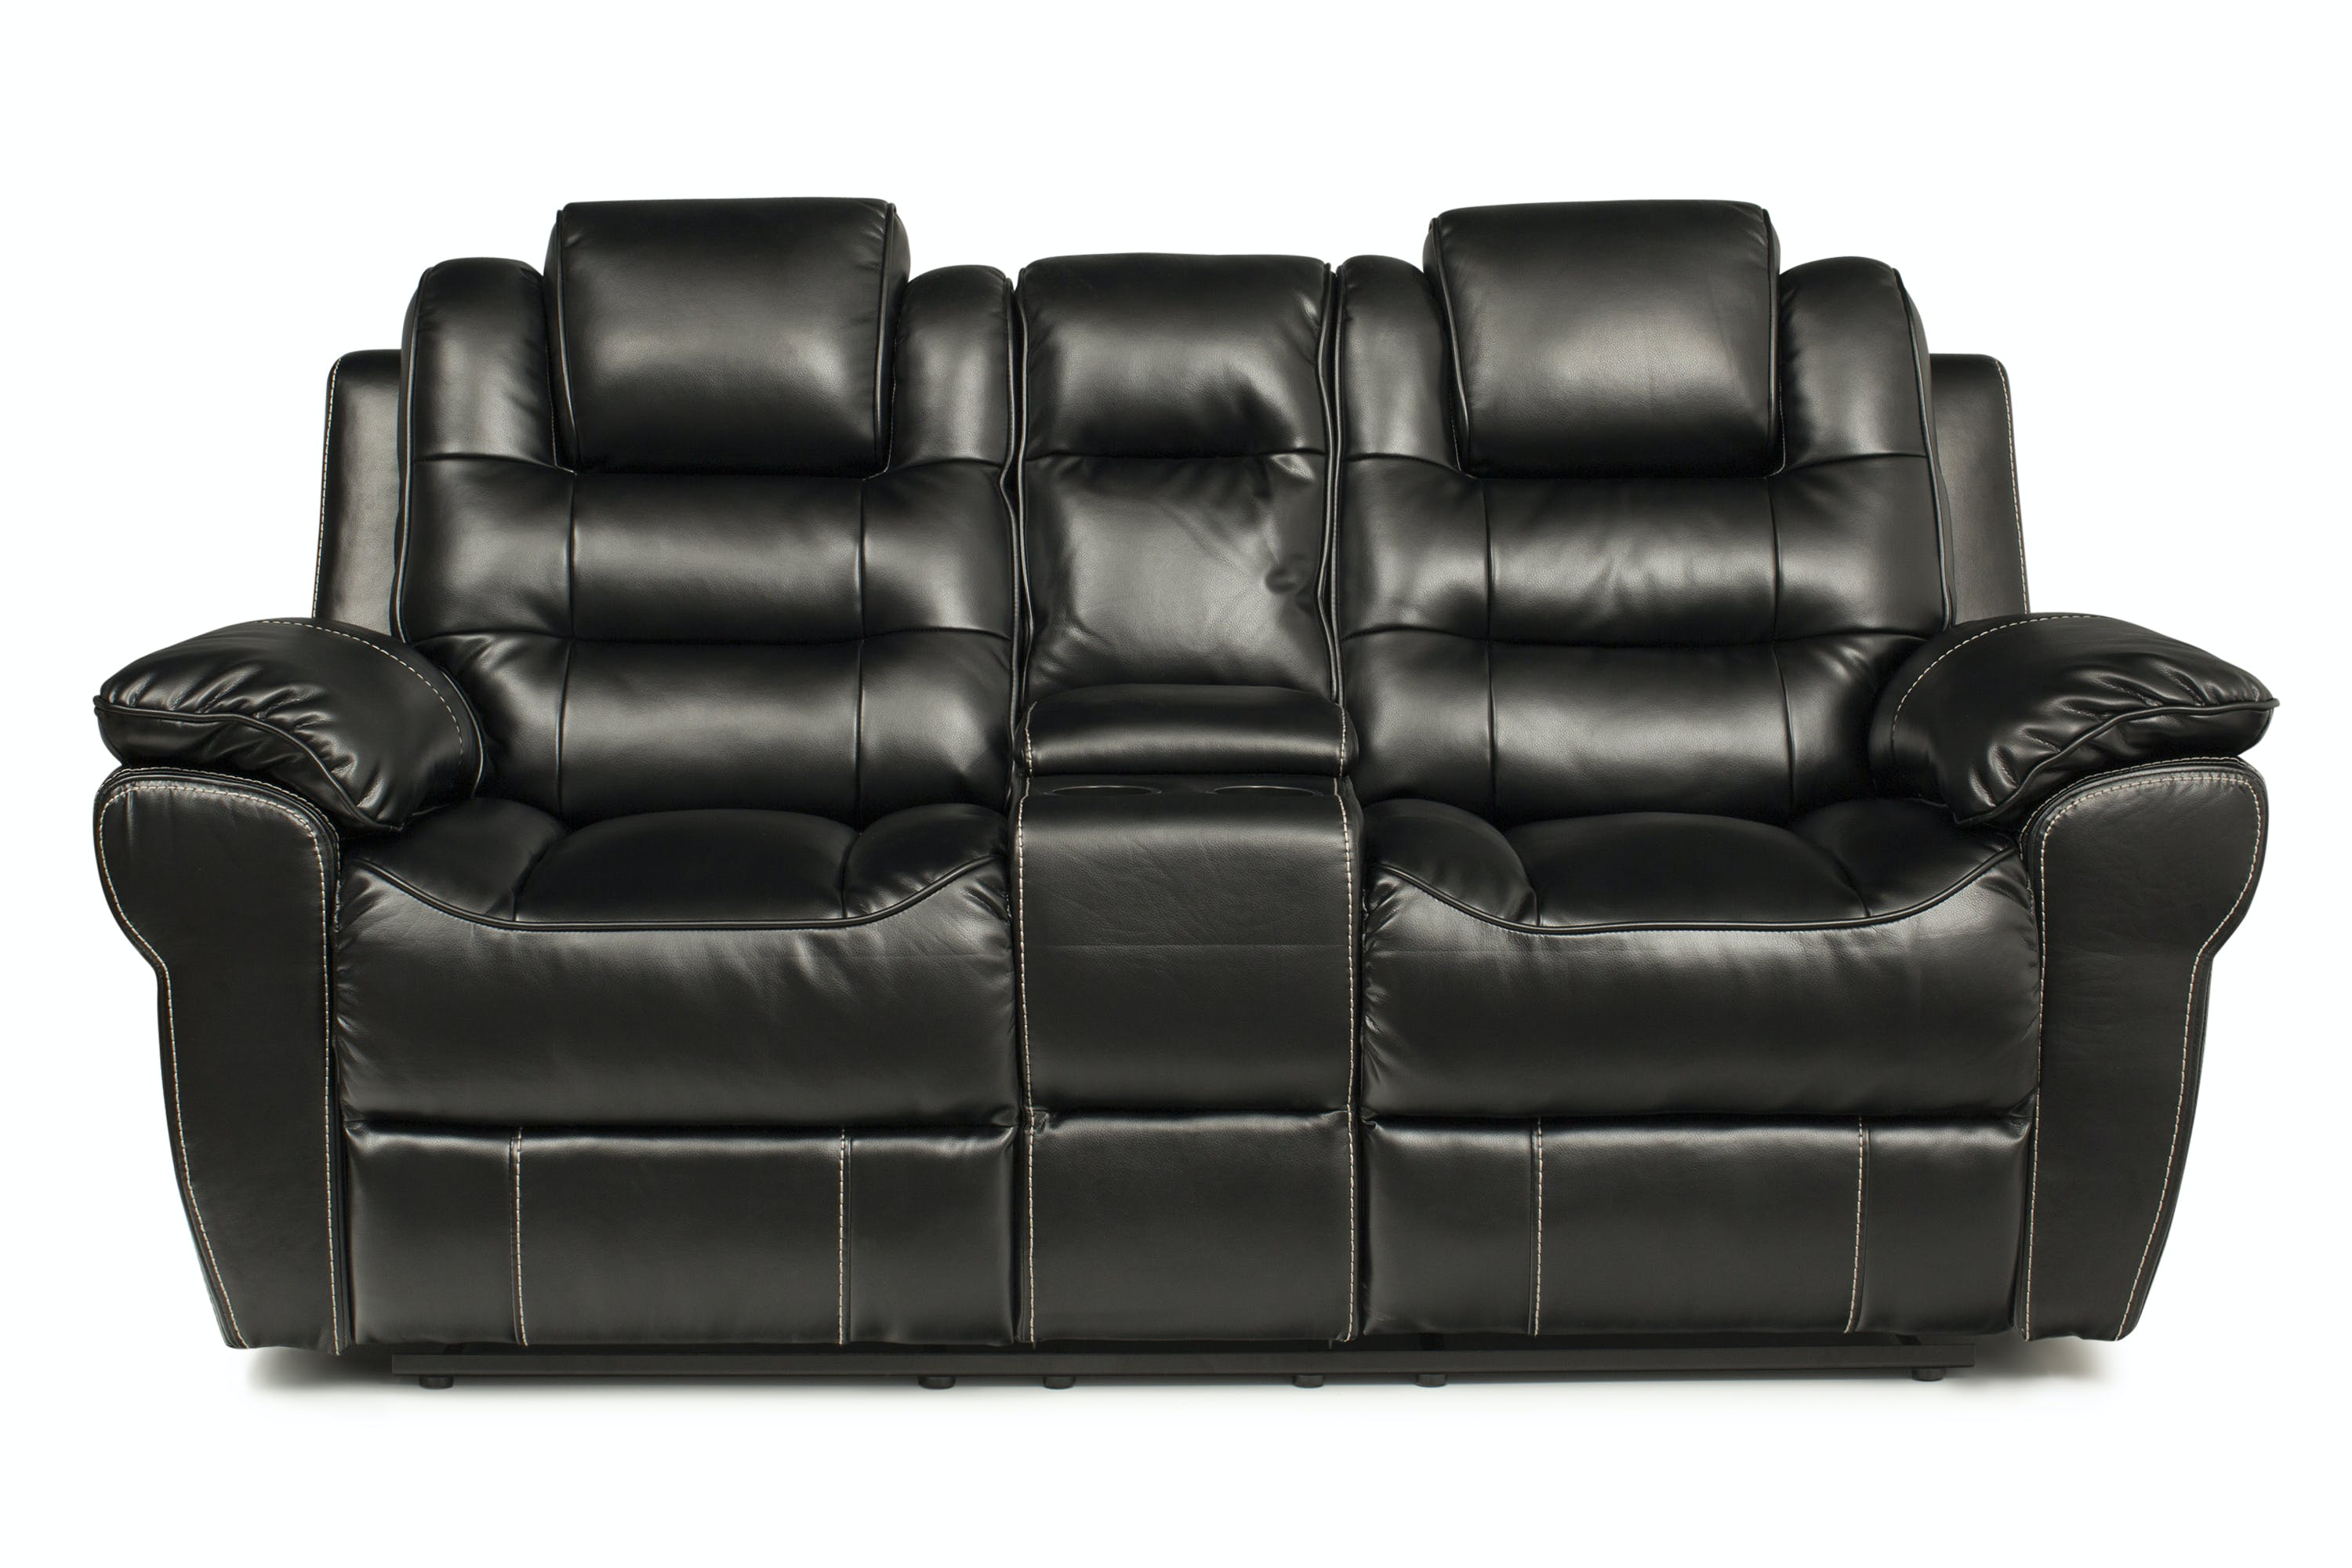 Recliner With Storage Home Design Ideas